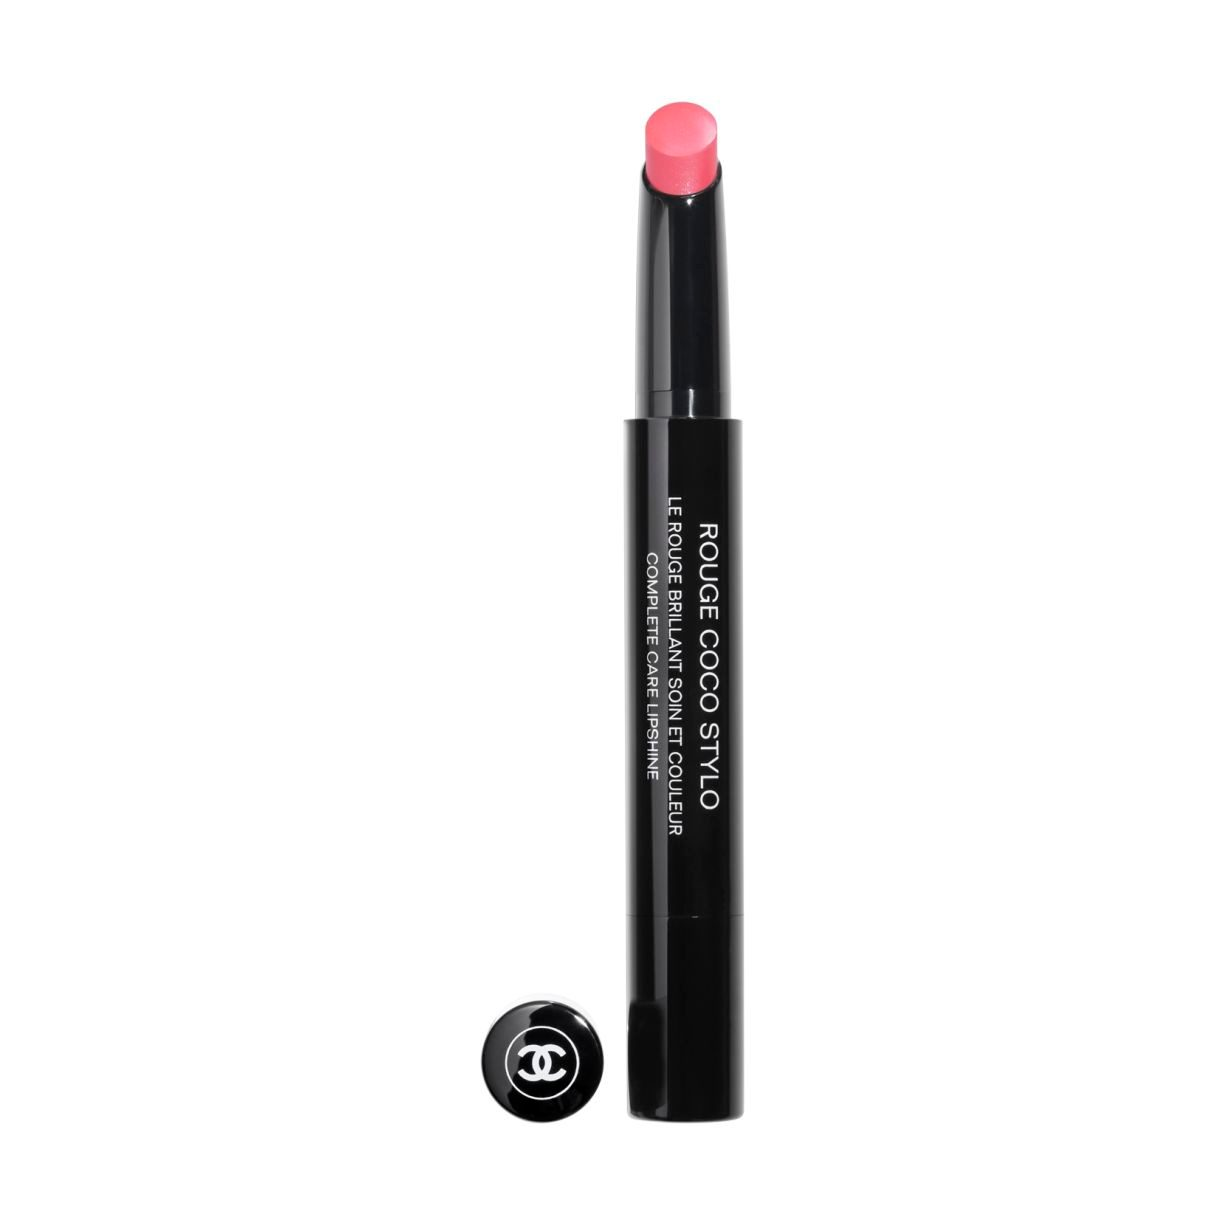 ROUGE COCO STYLO LABIAL 202 - CONTE